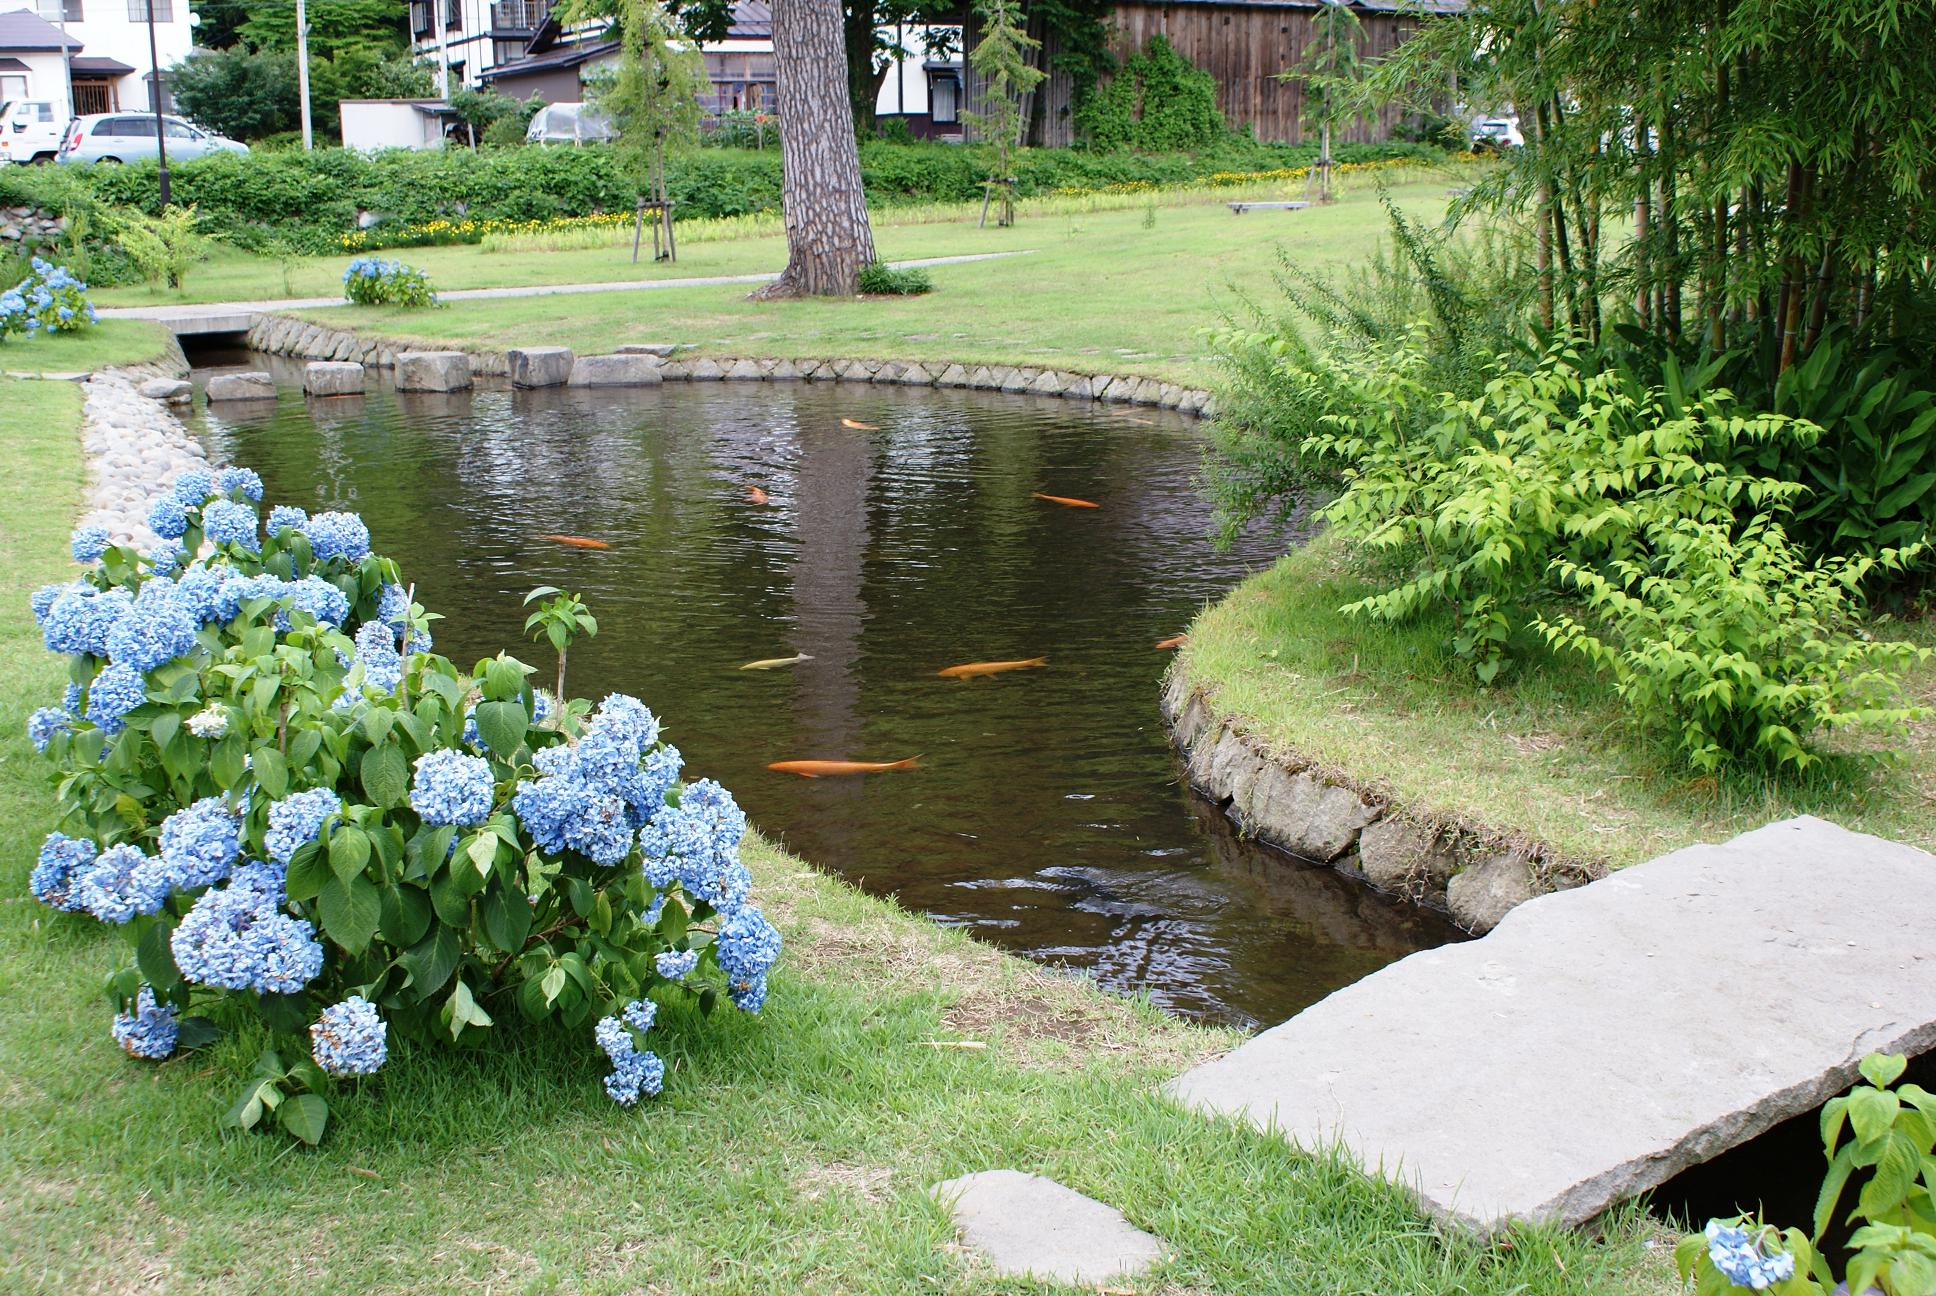 Backyard fish farming raise fish in your home pond for The backyard pond